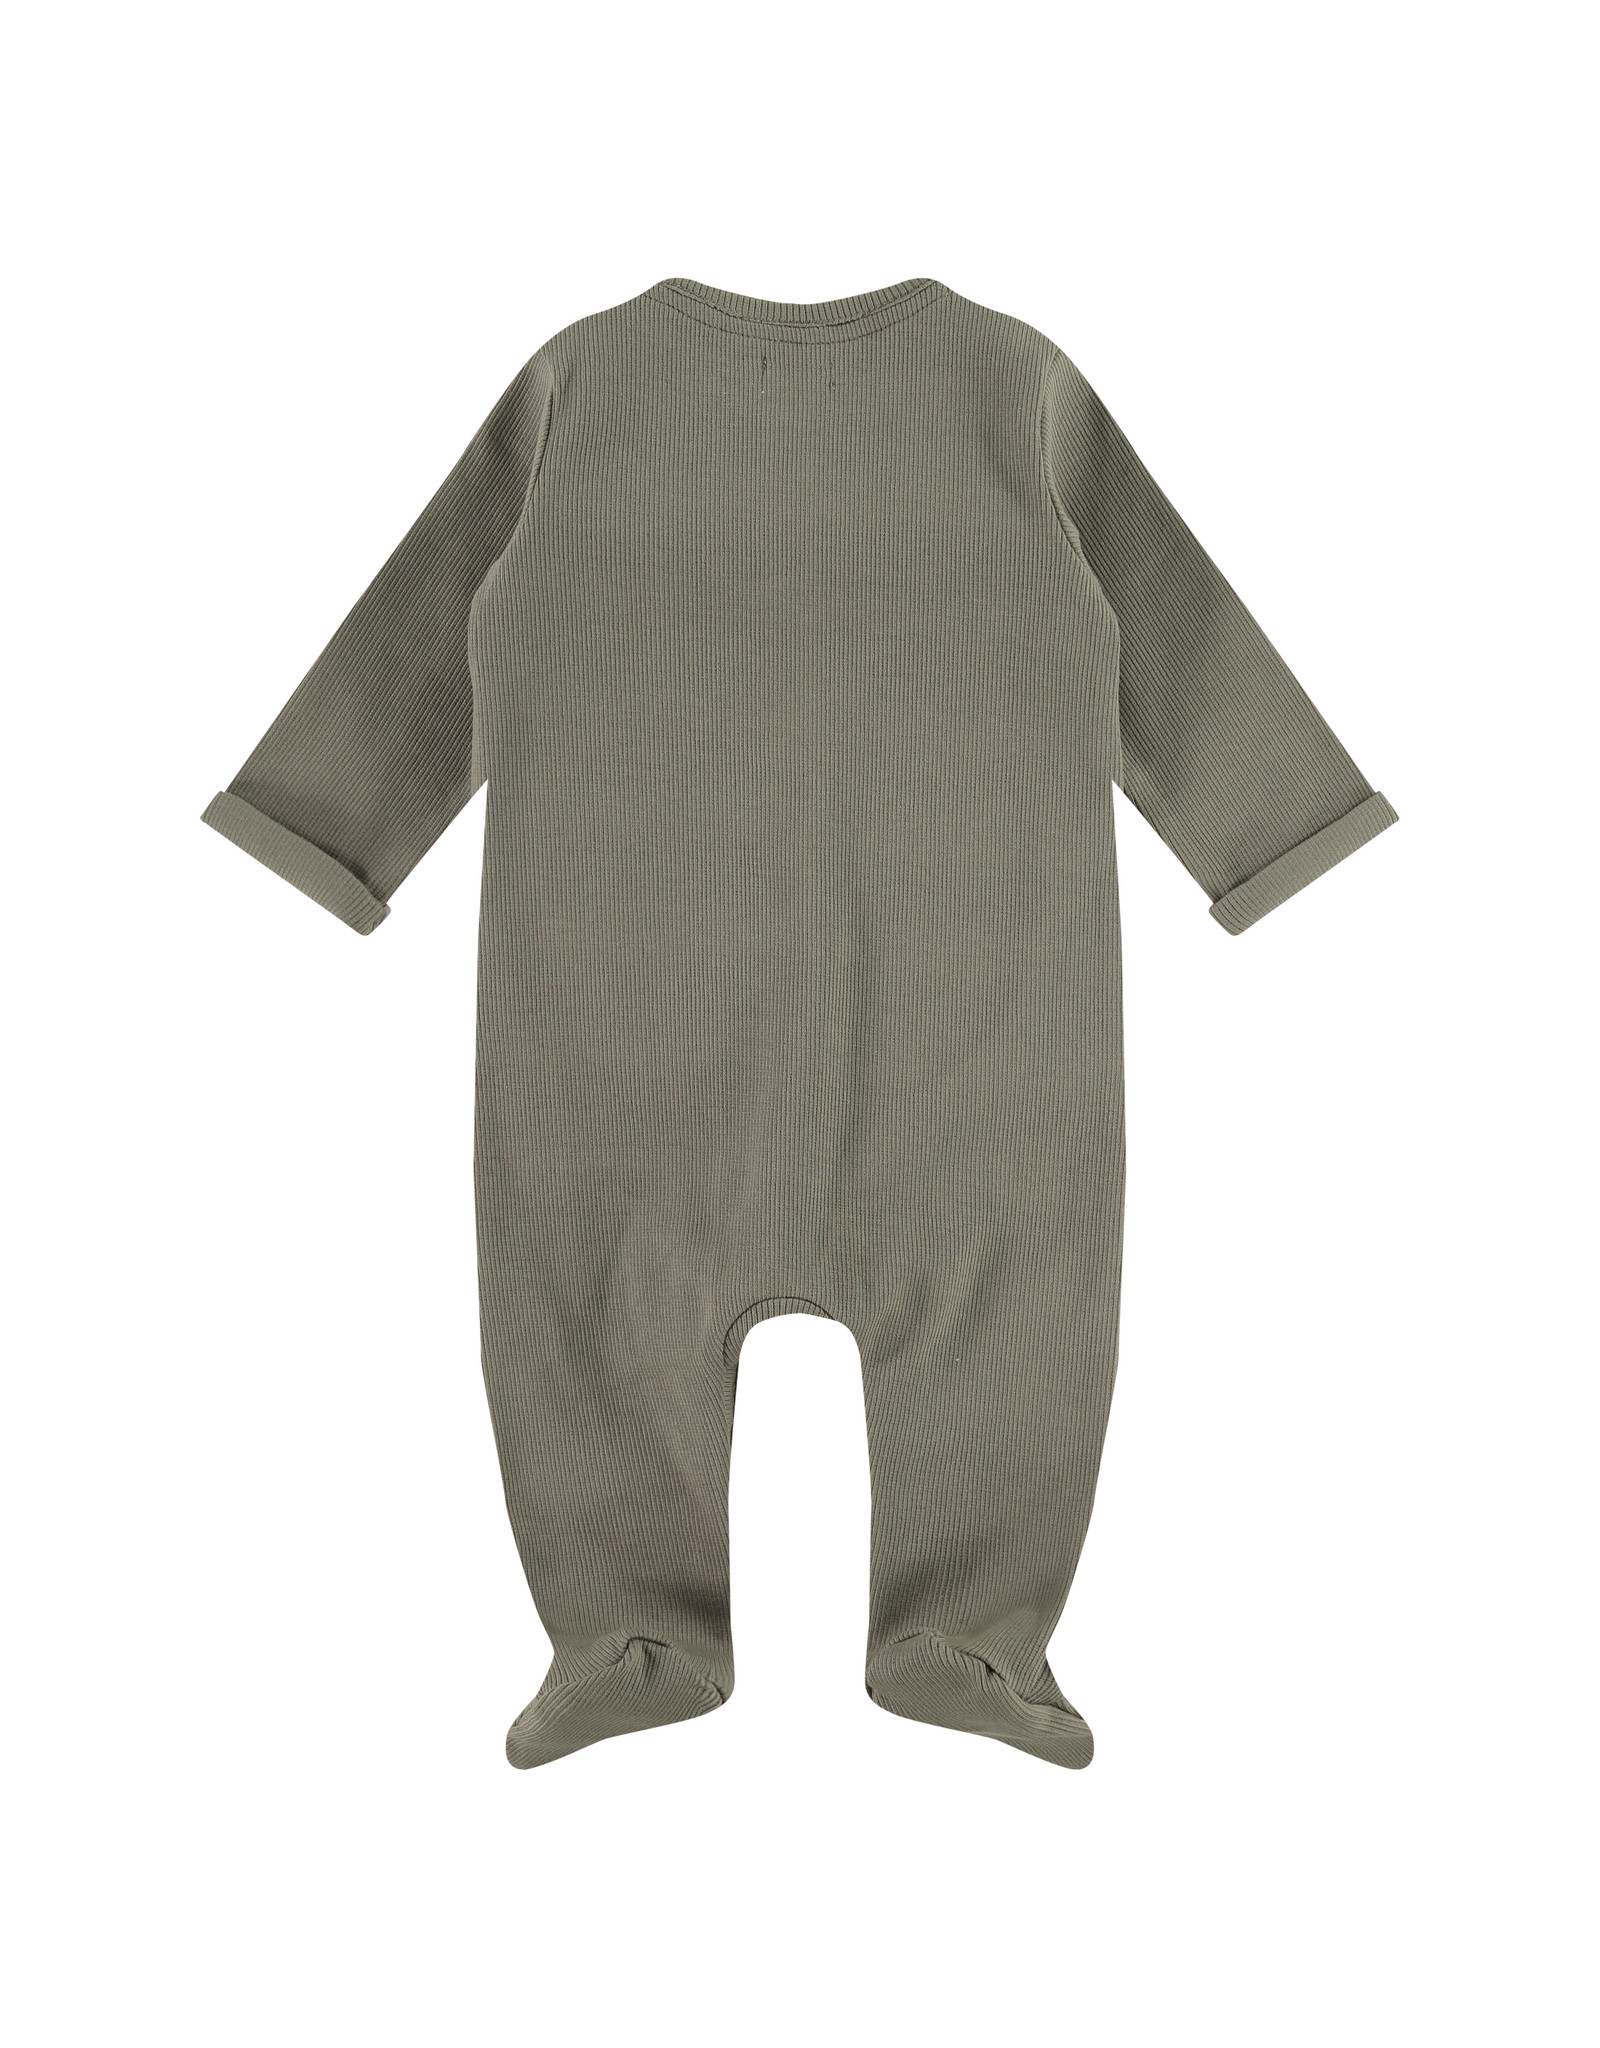 Babyface baby suit, olive green